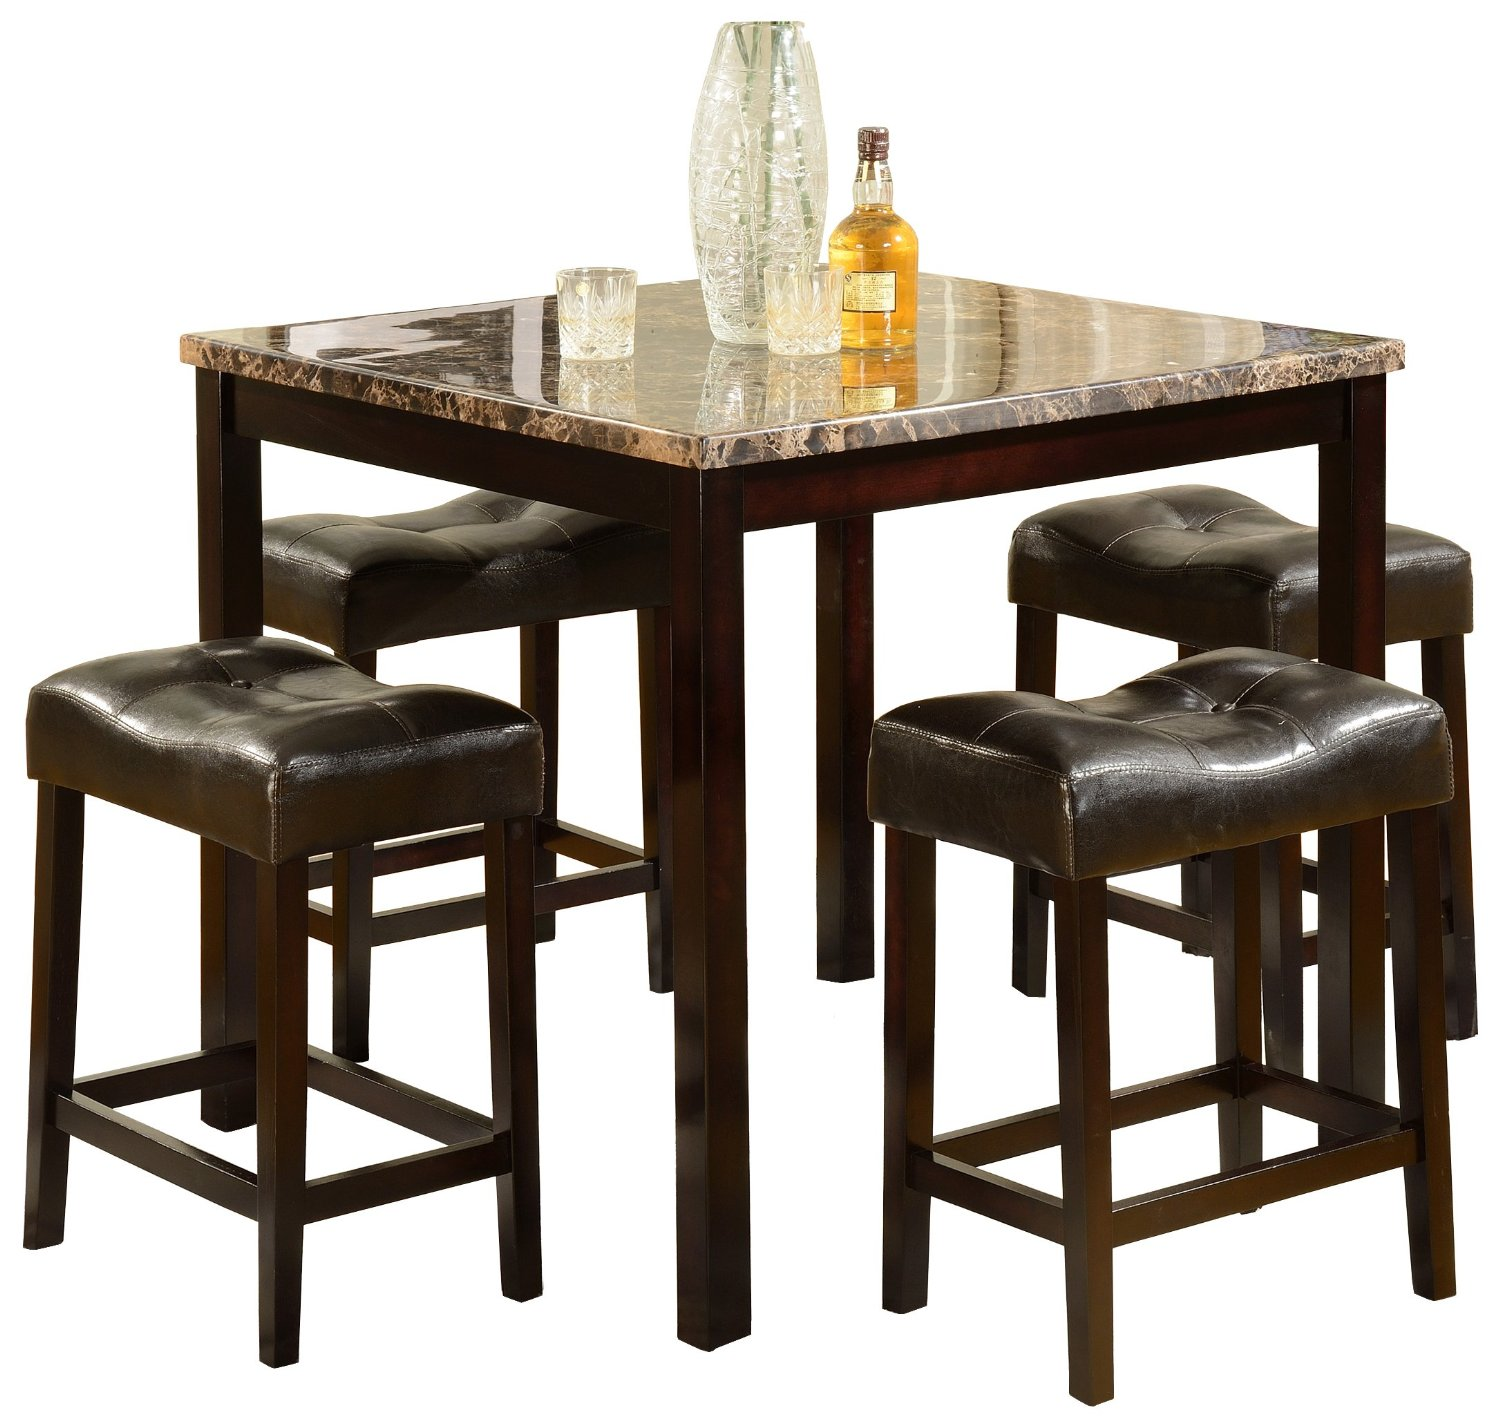 High Top Table And Chairs High Top Table Sets To Create An Entertaining Dining Space